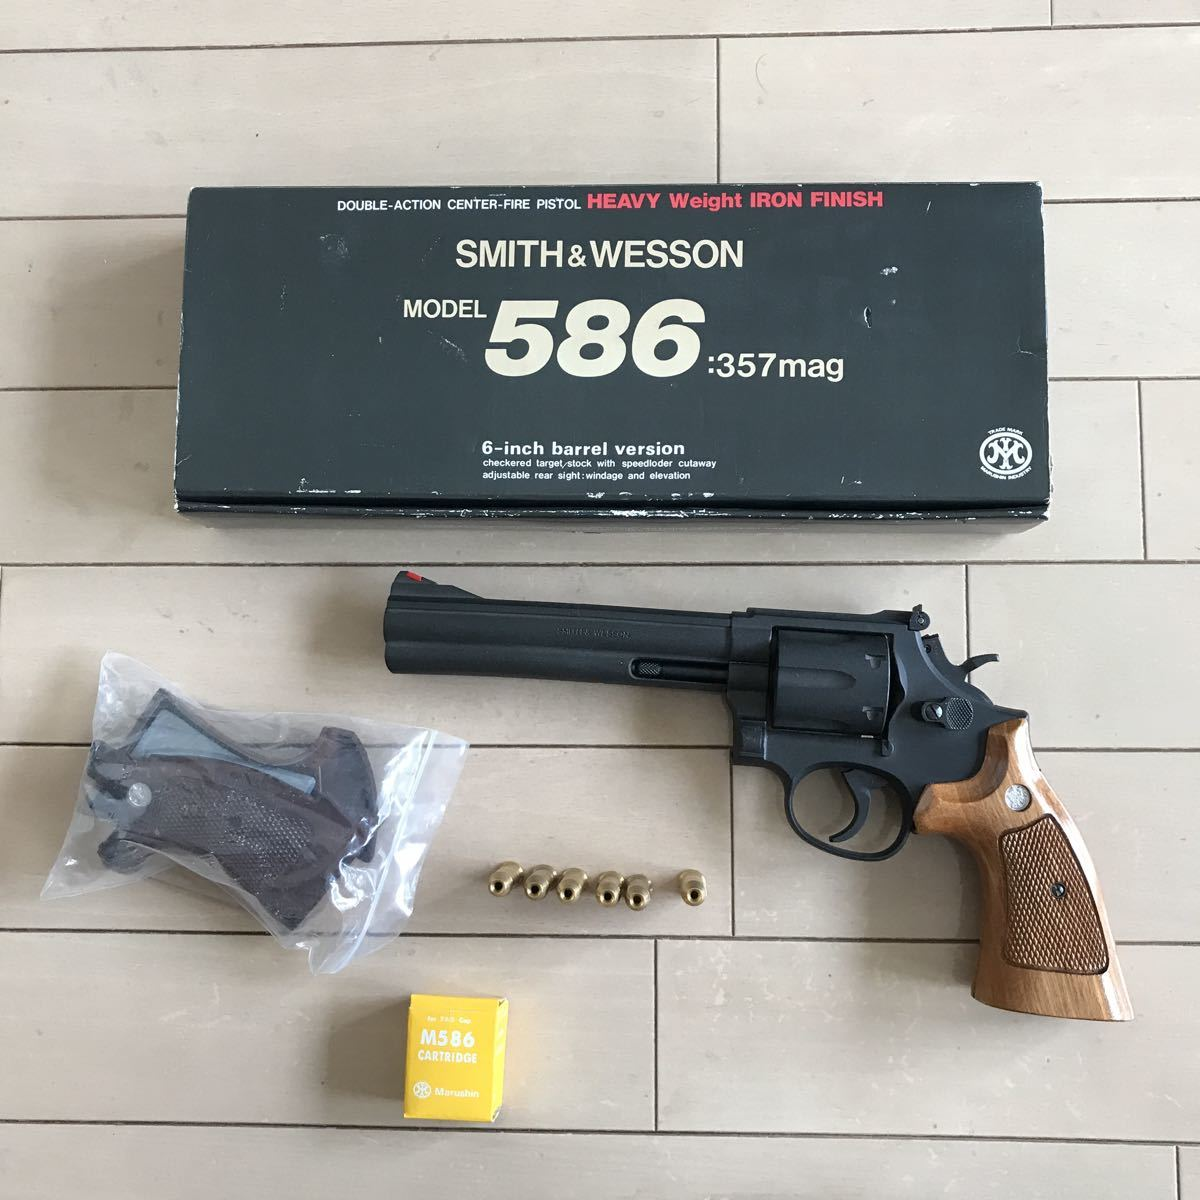 SMITH&WESSON 586 HEAVY weight iron finish 6inchマルシン _画像1